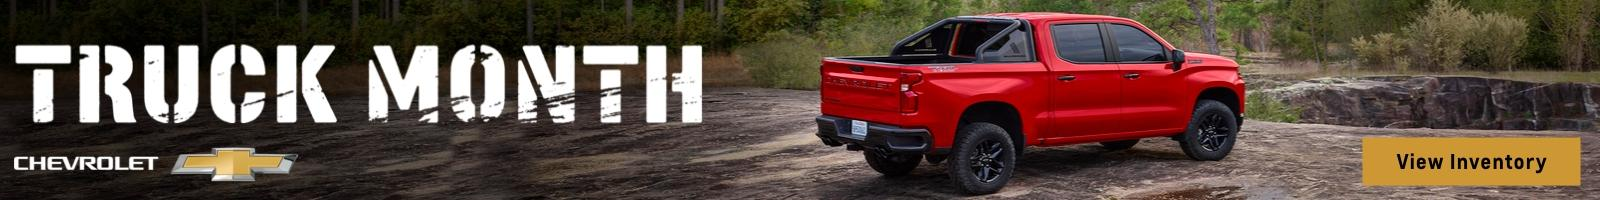 Chevy Truck Month.